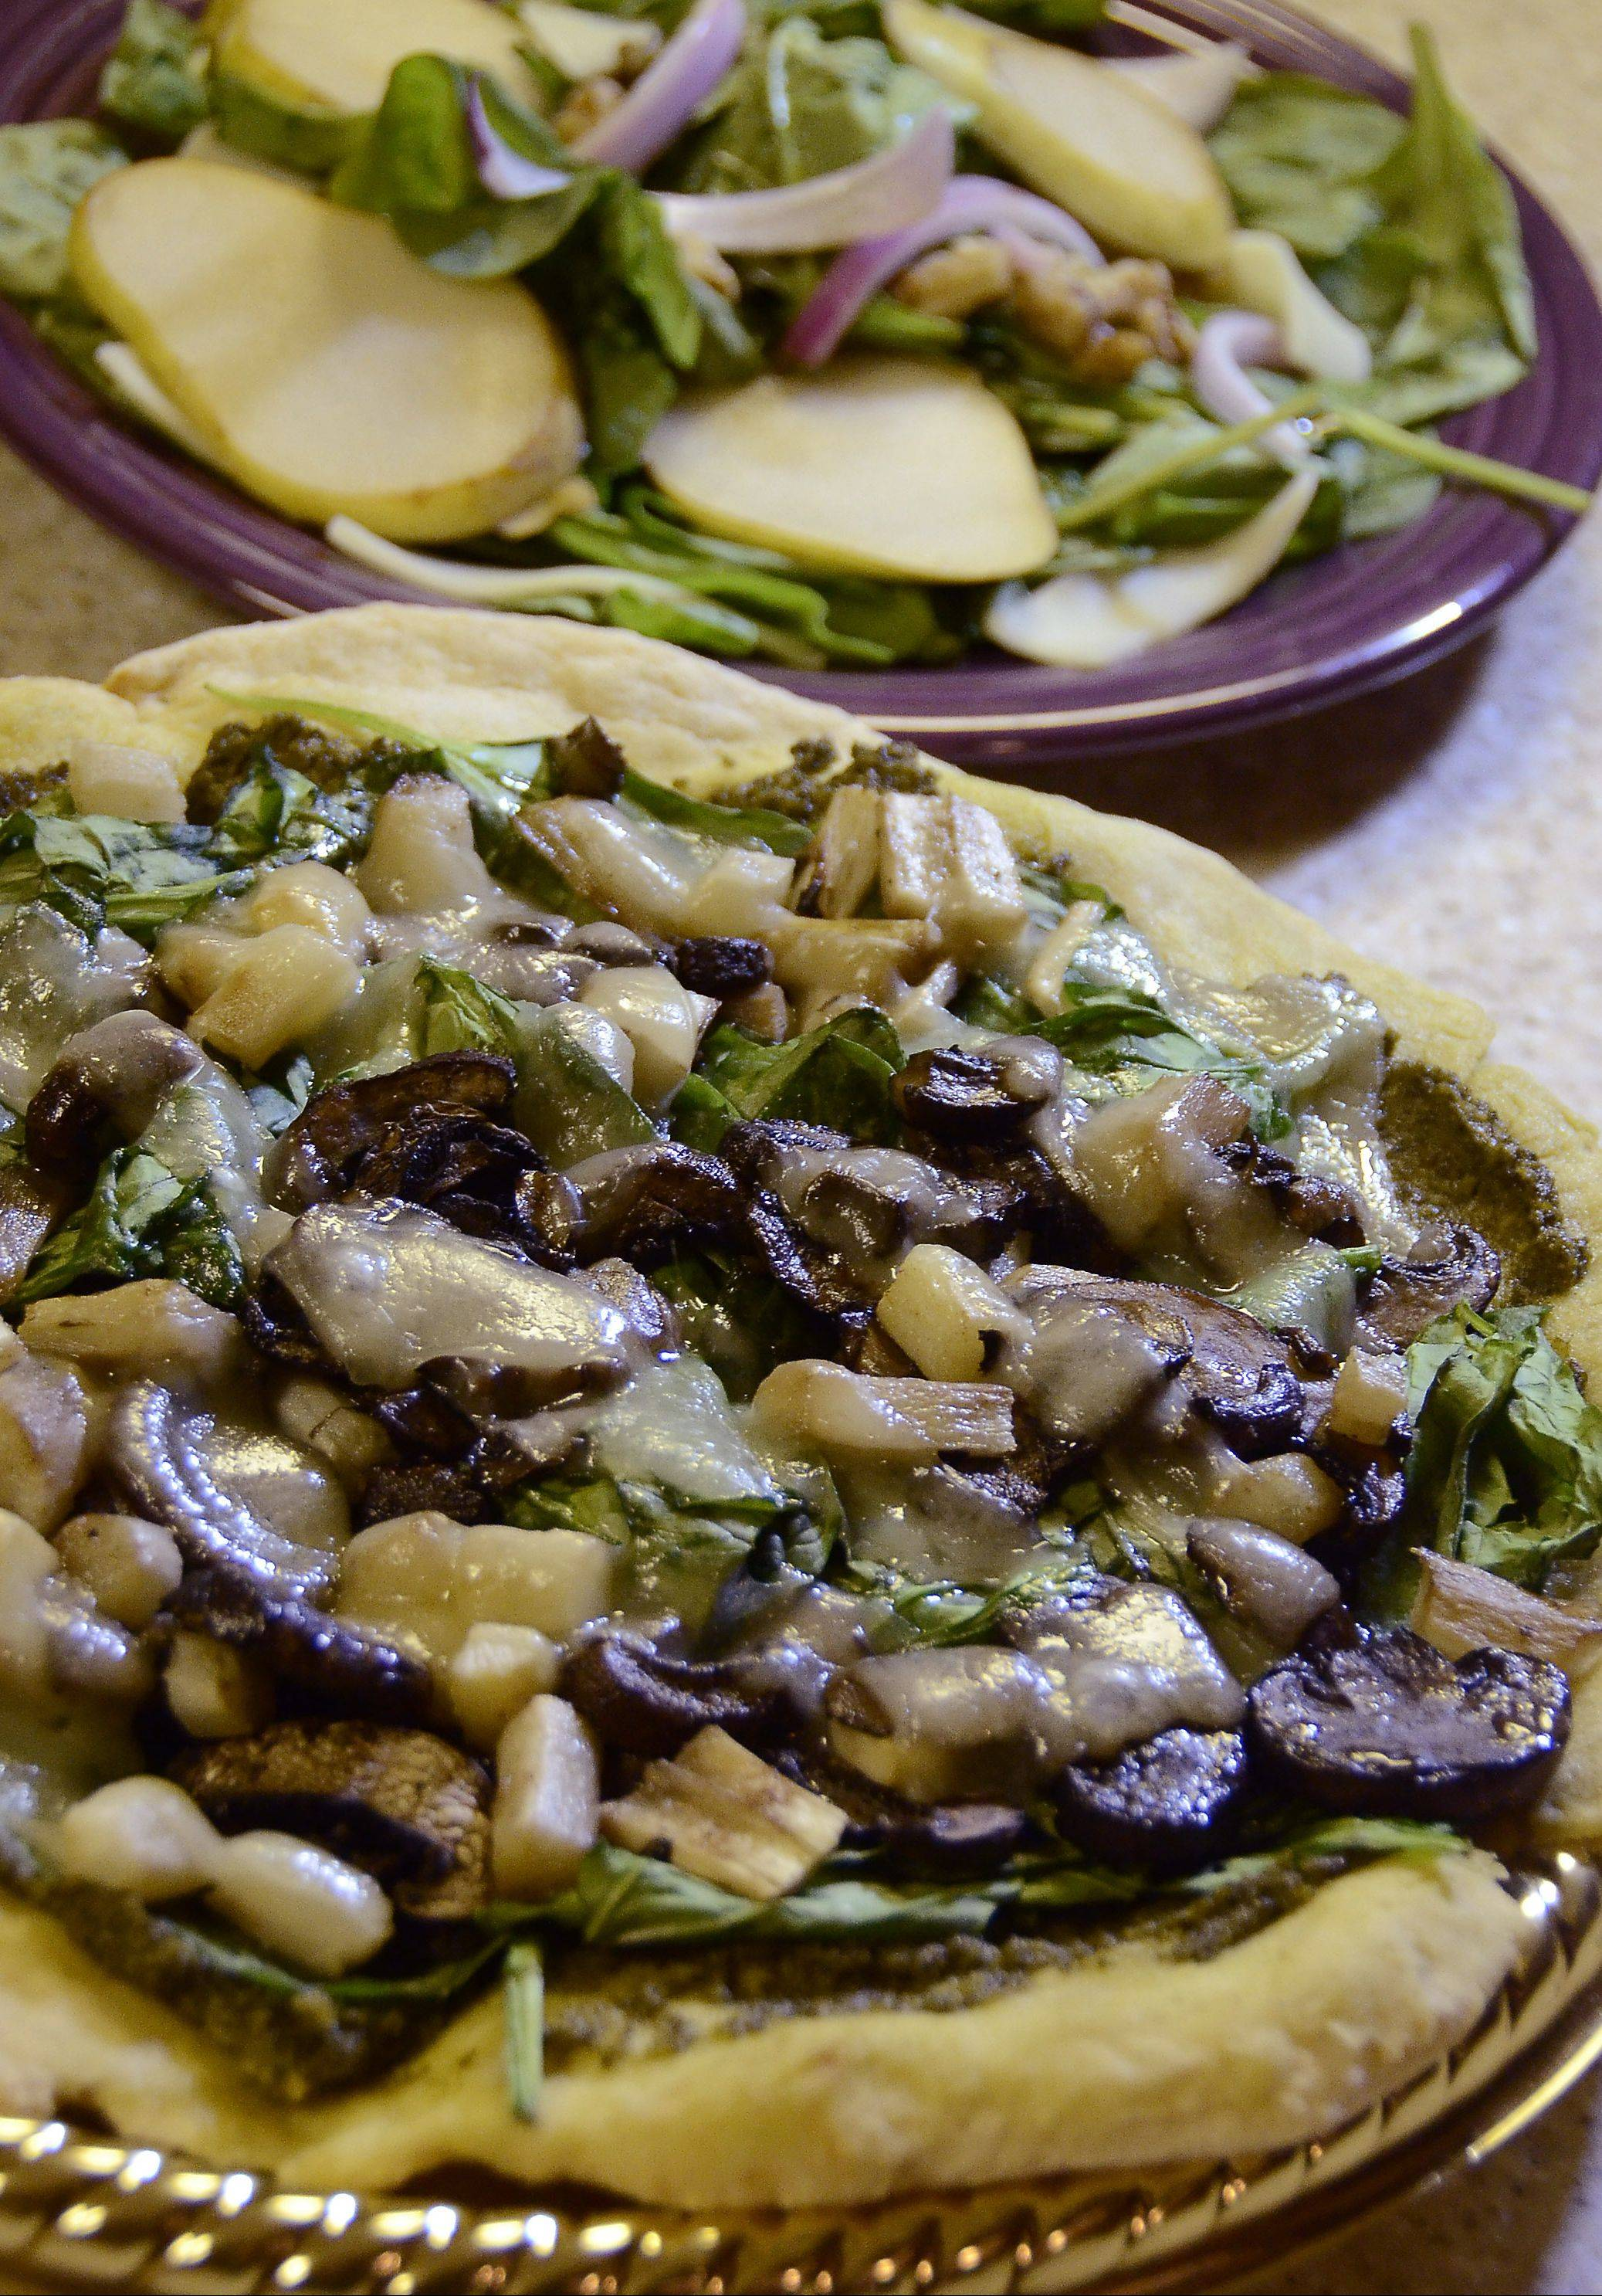 Michelle Abraham tops gluten-free pizza crust with roasted salsify root and mushrooms and serves a pear and spinach salad on the side.